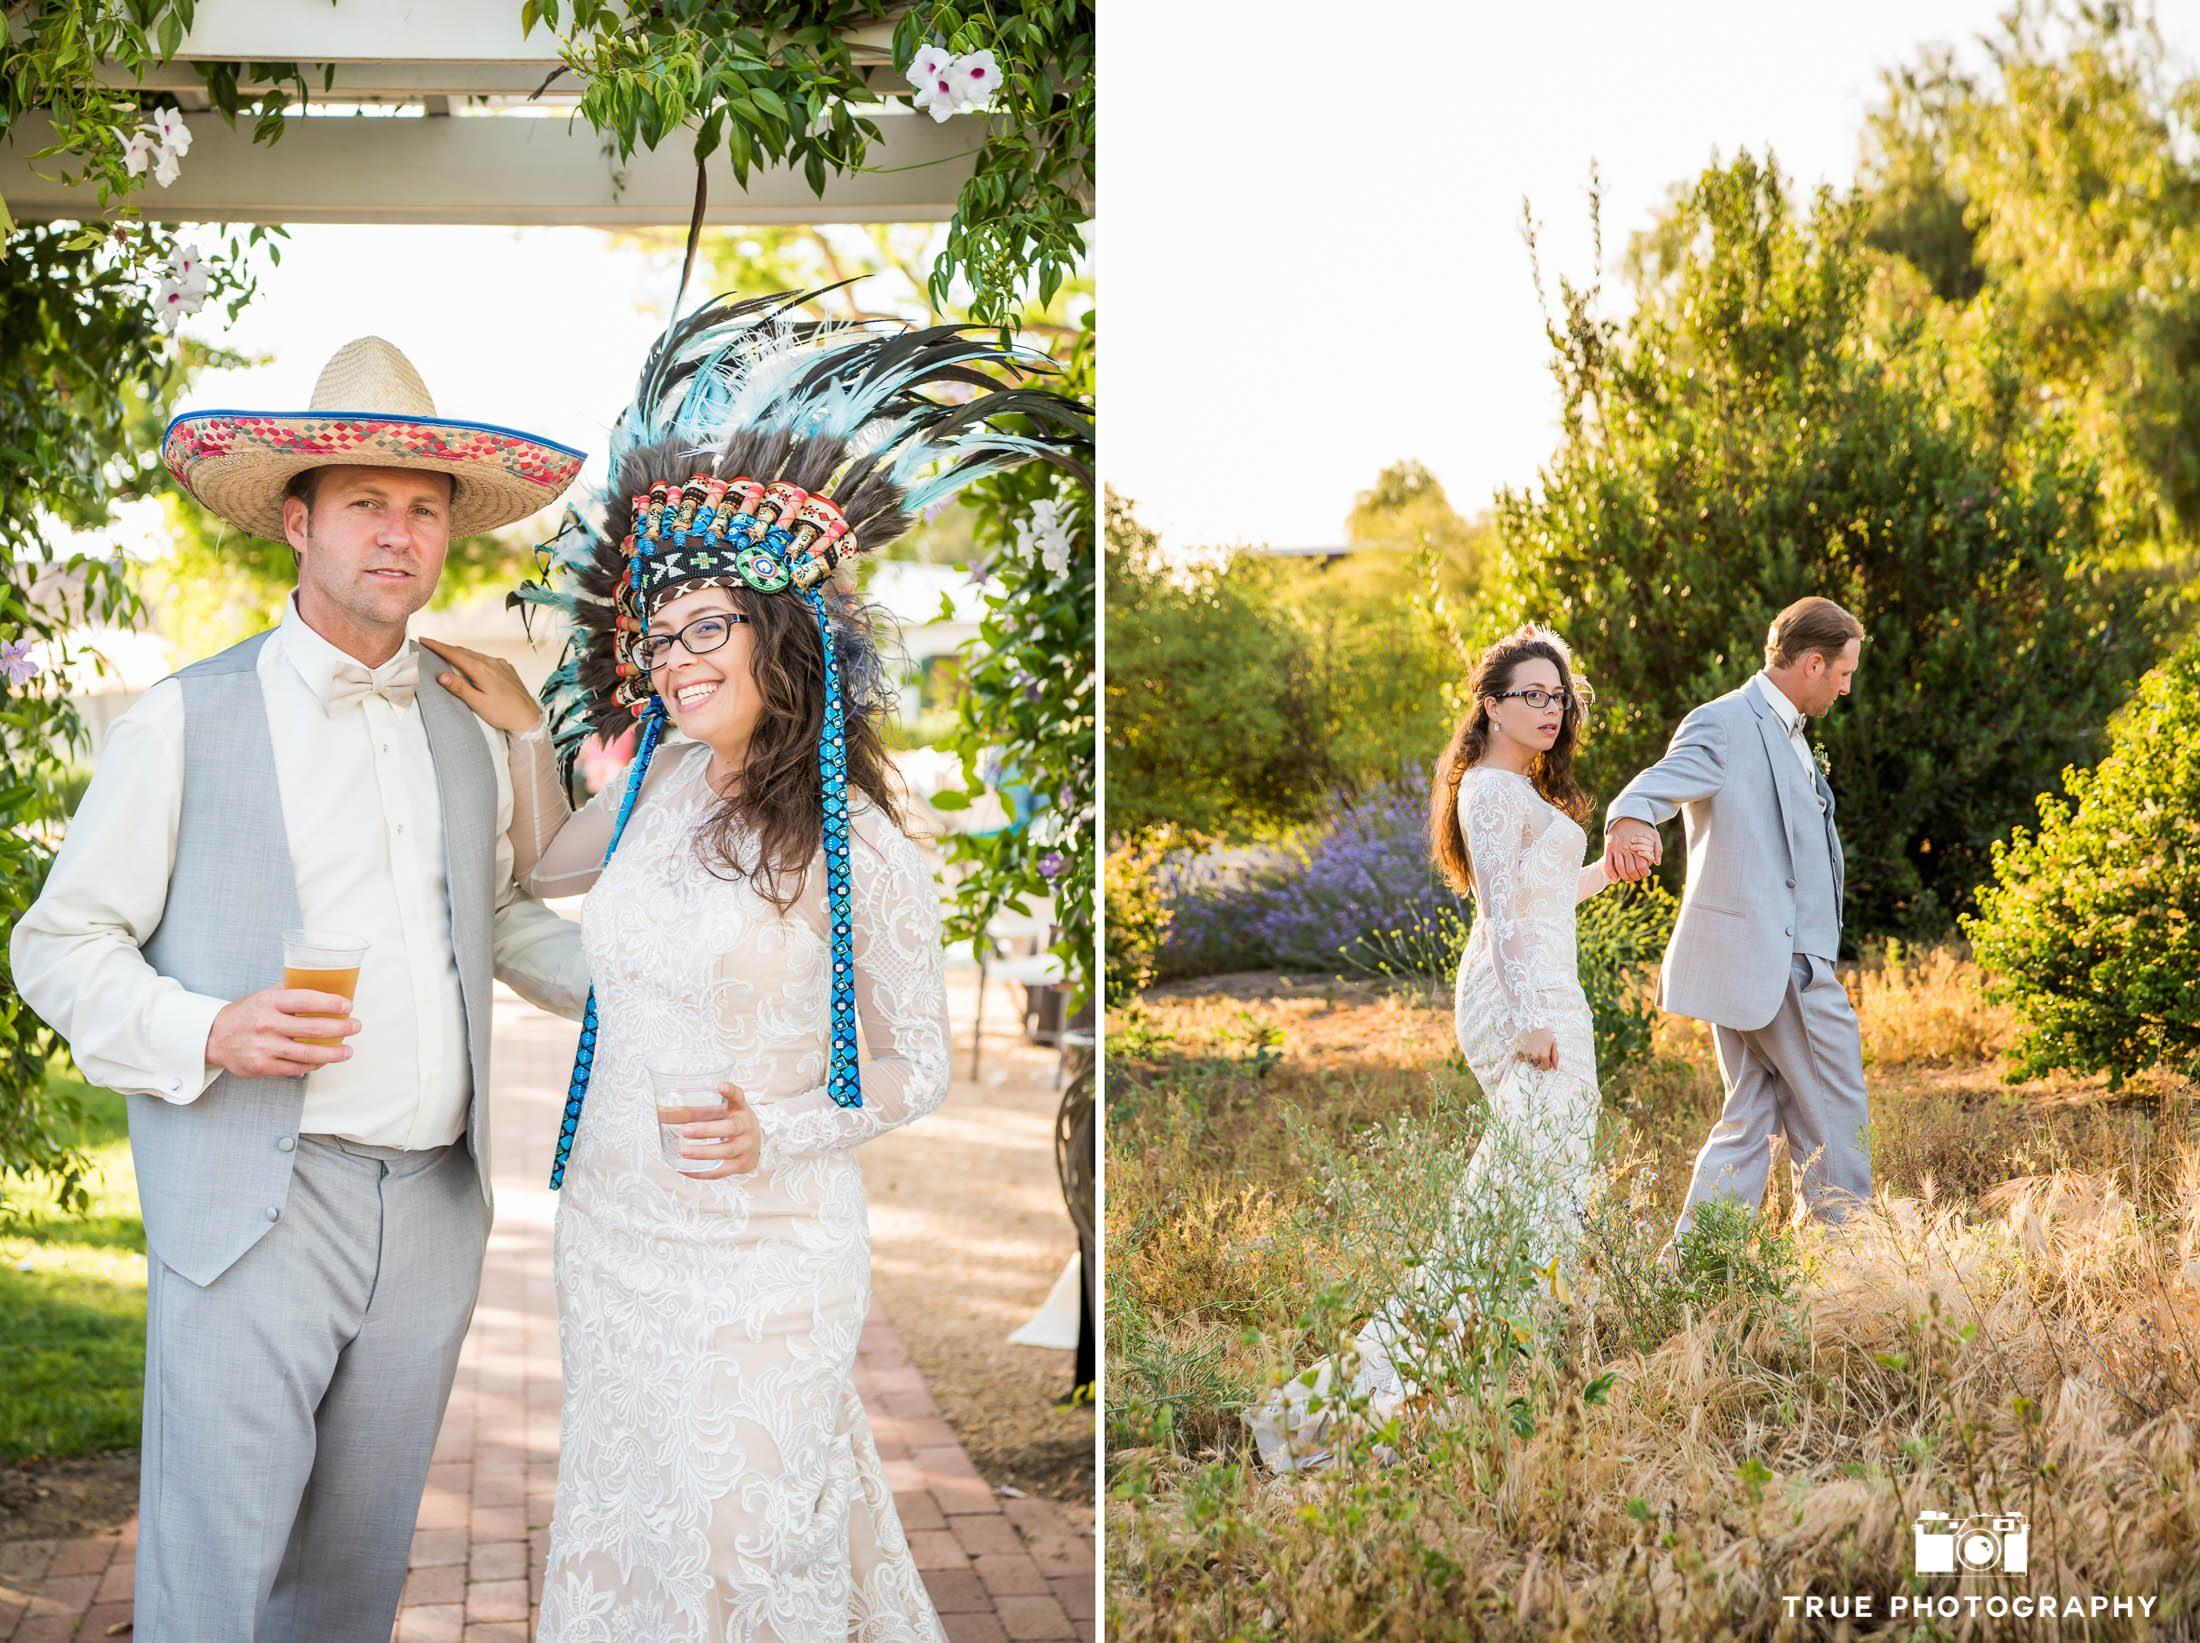 Wedding Couple with fun photobooth props and walking through grassy field during sunset at wedding reception at spanish-style ranch